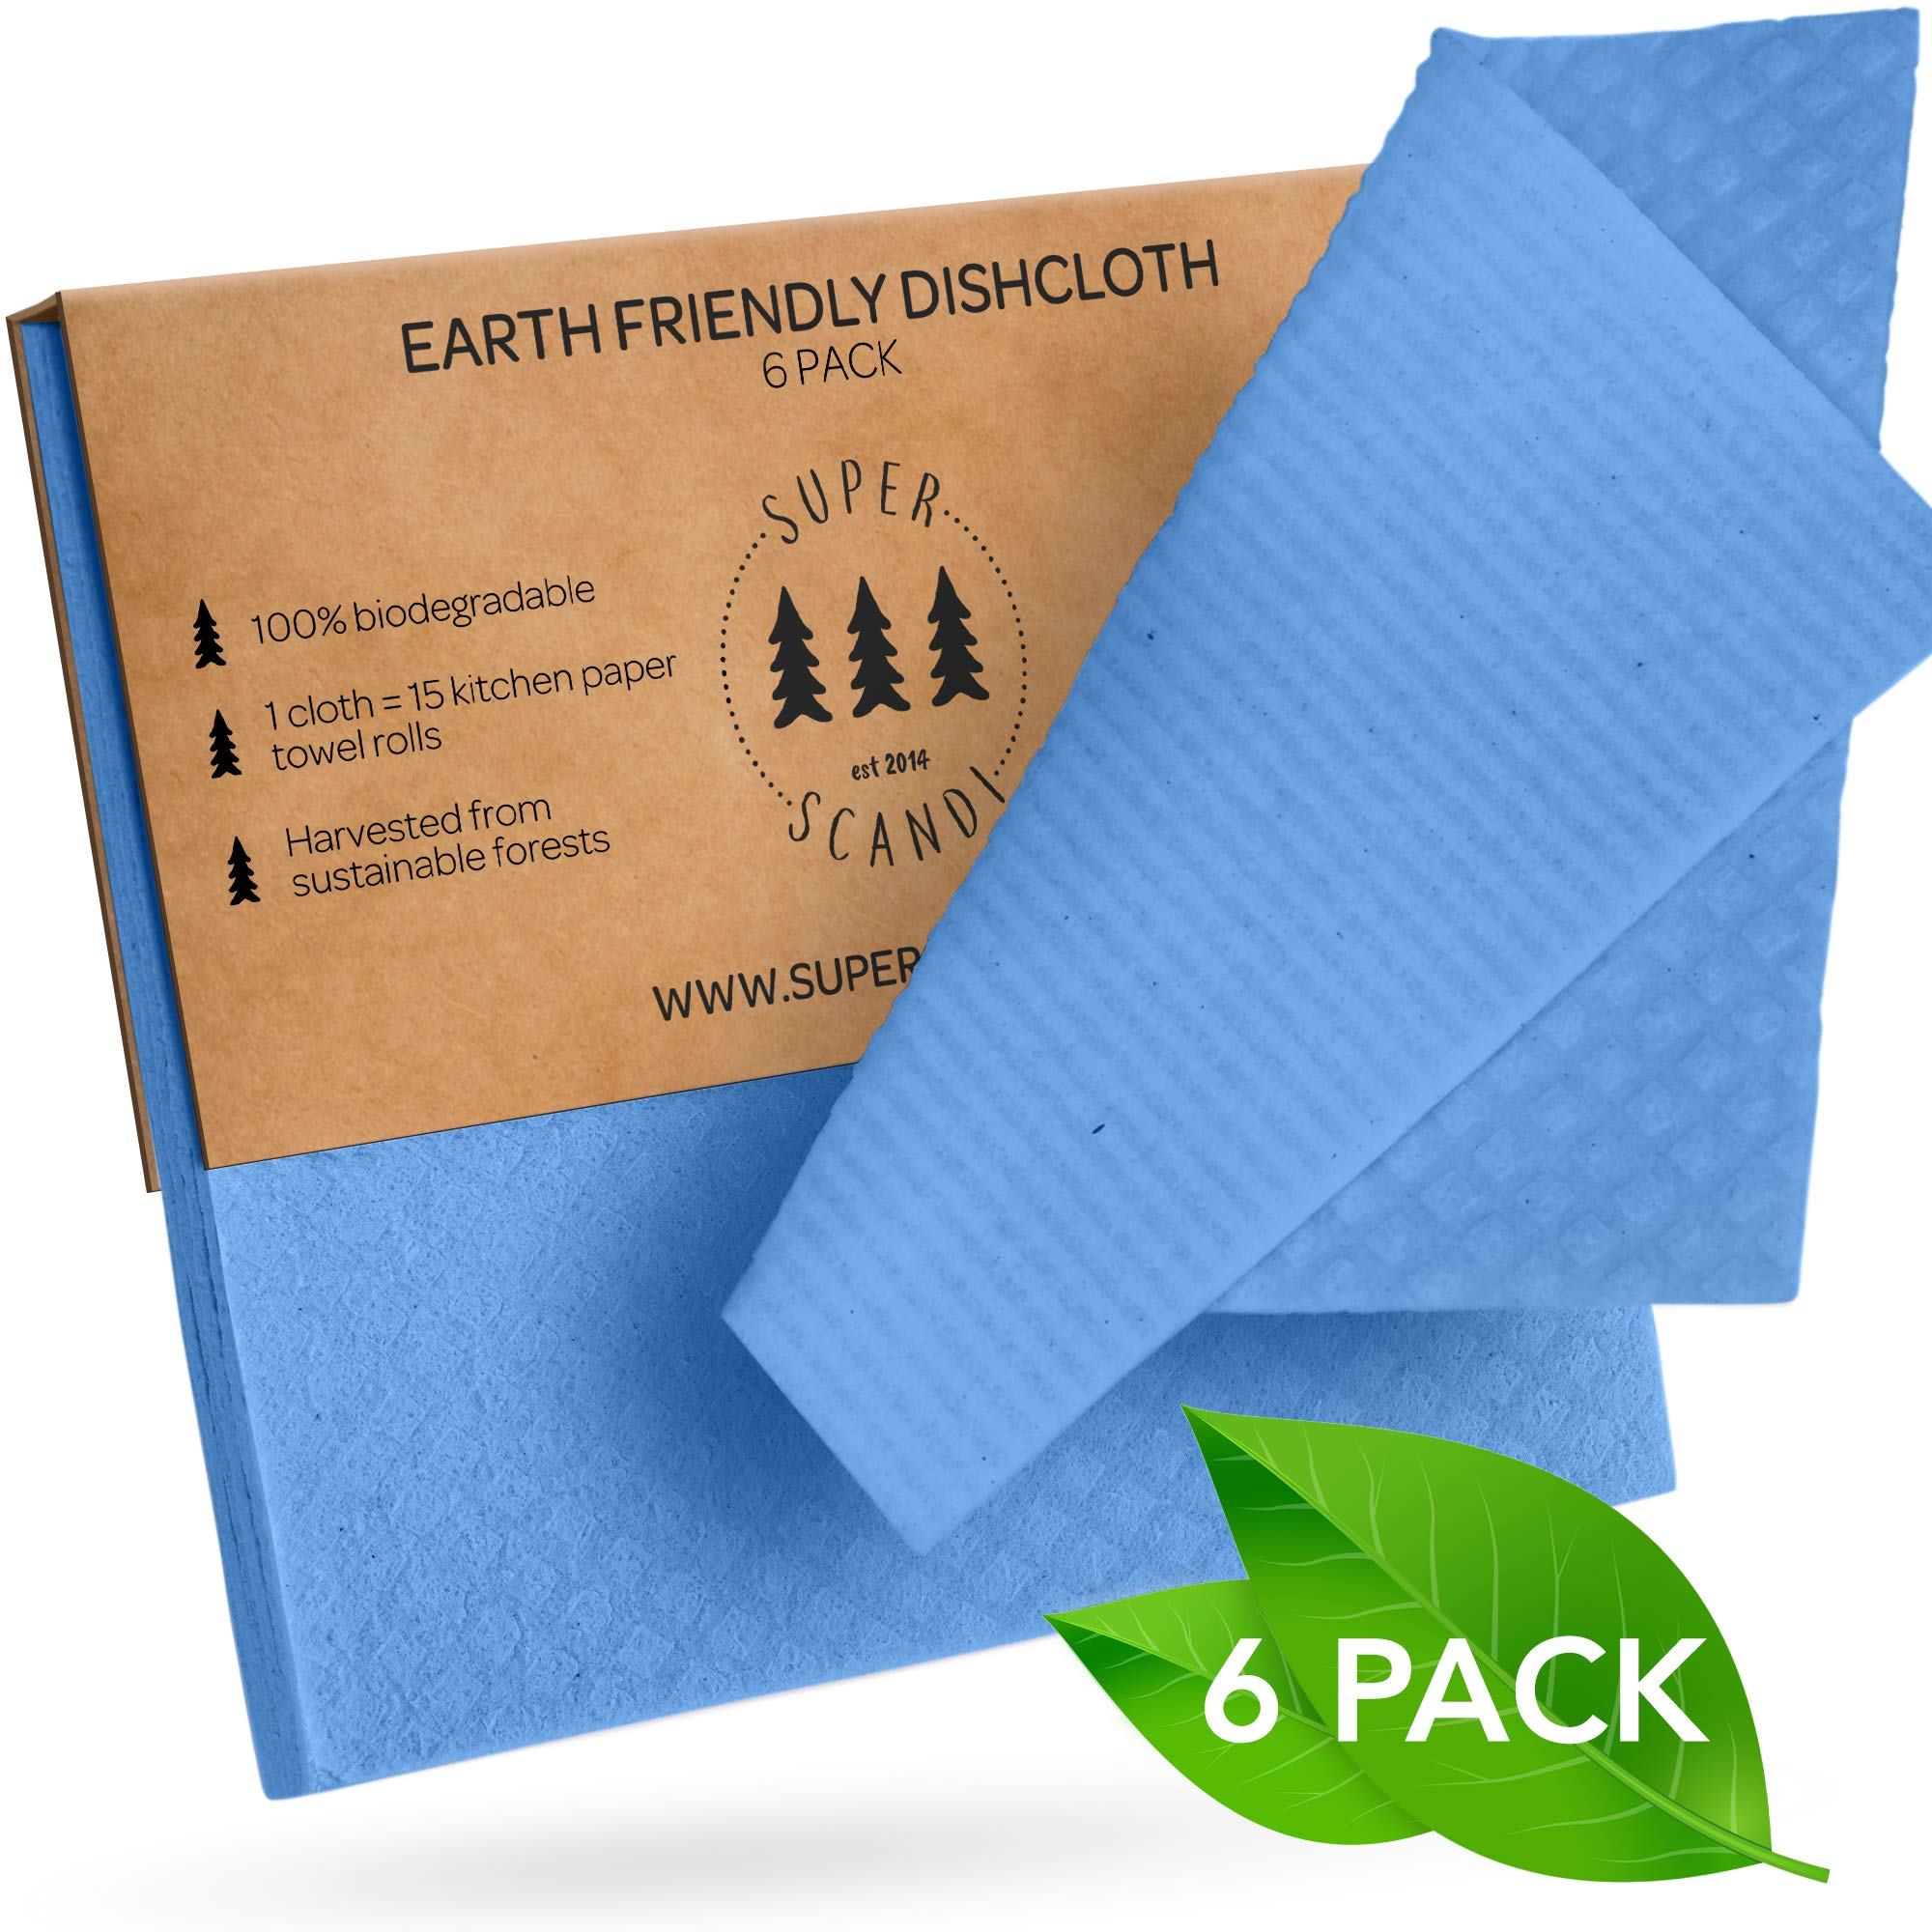 SUPERSCANDI Swedish Dishcloths Reusable Biodegradable Cellulose Sponge Cleaning Cloths for Kitchen Dish Rags Washing Wipes Paper Towel Replacement Washcloths (6 Pack Blue)